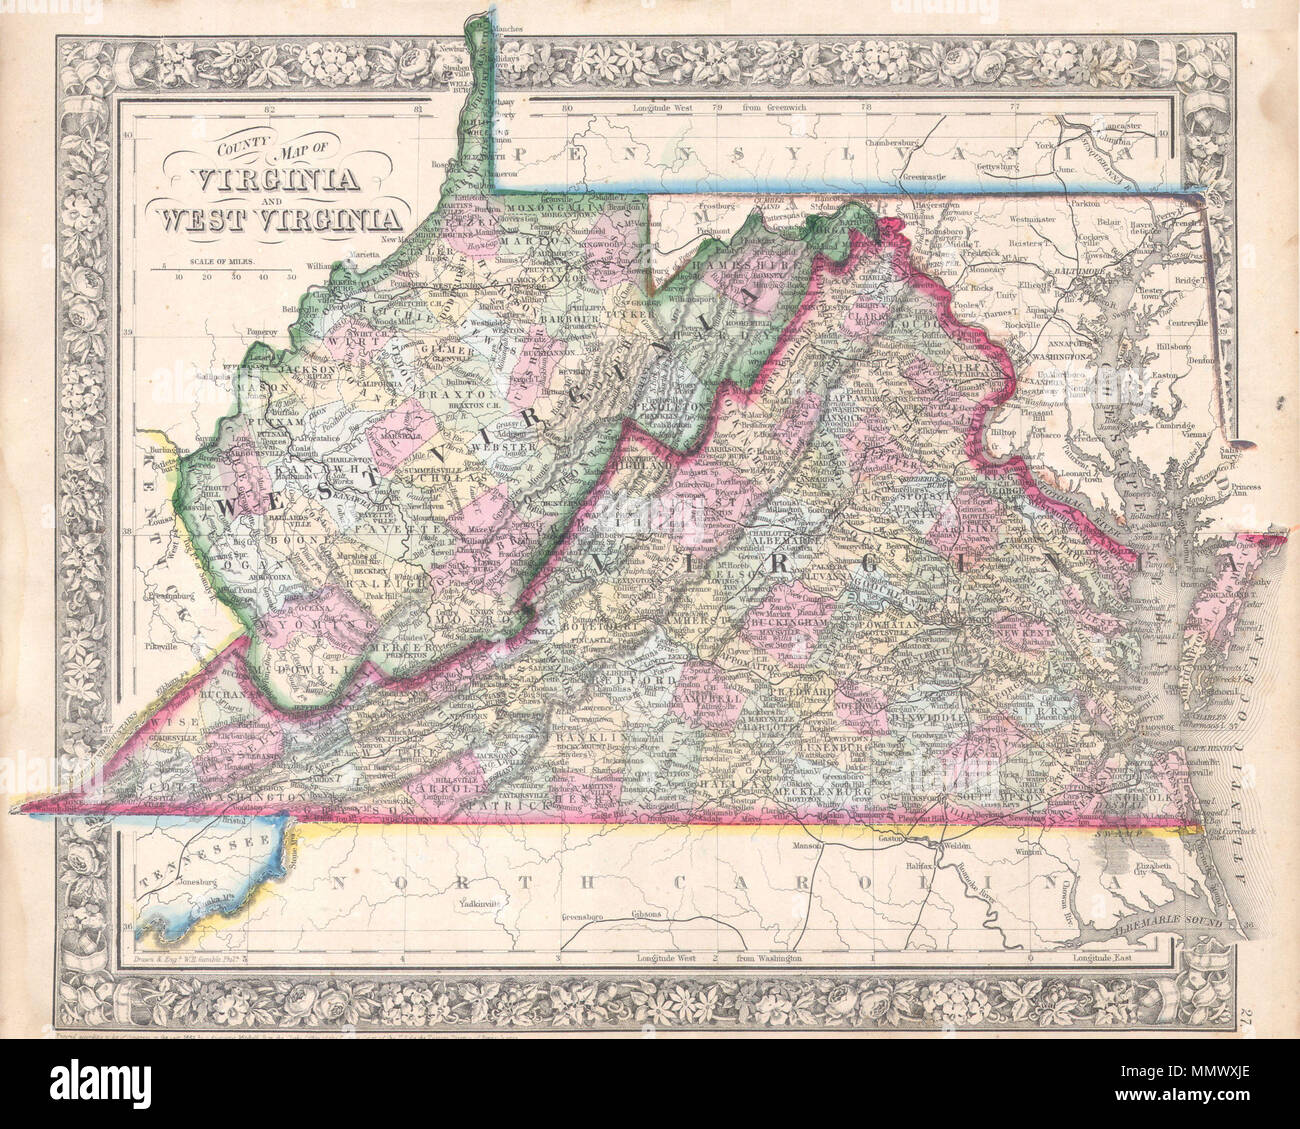 Harpers Ferry Virginia Map.English A Beautiful Example Of S A Mitchell Jr S 1864 Map Of